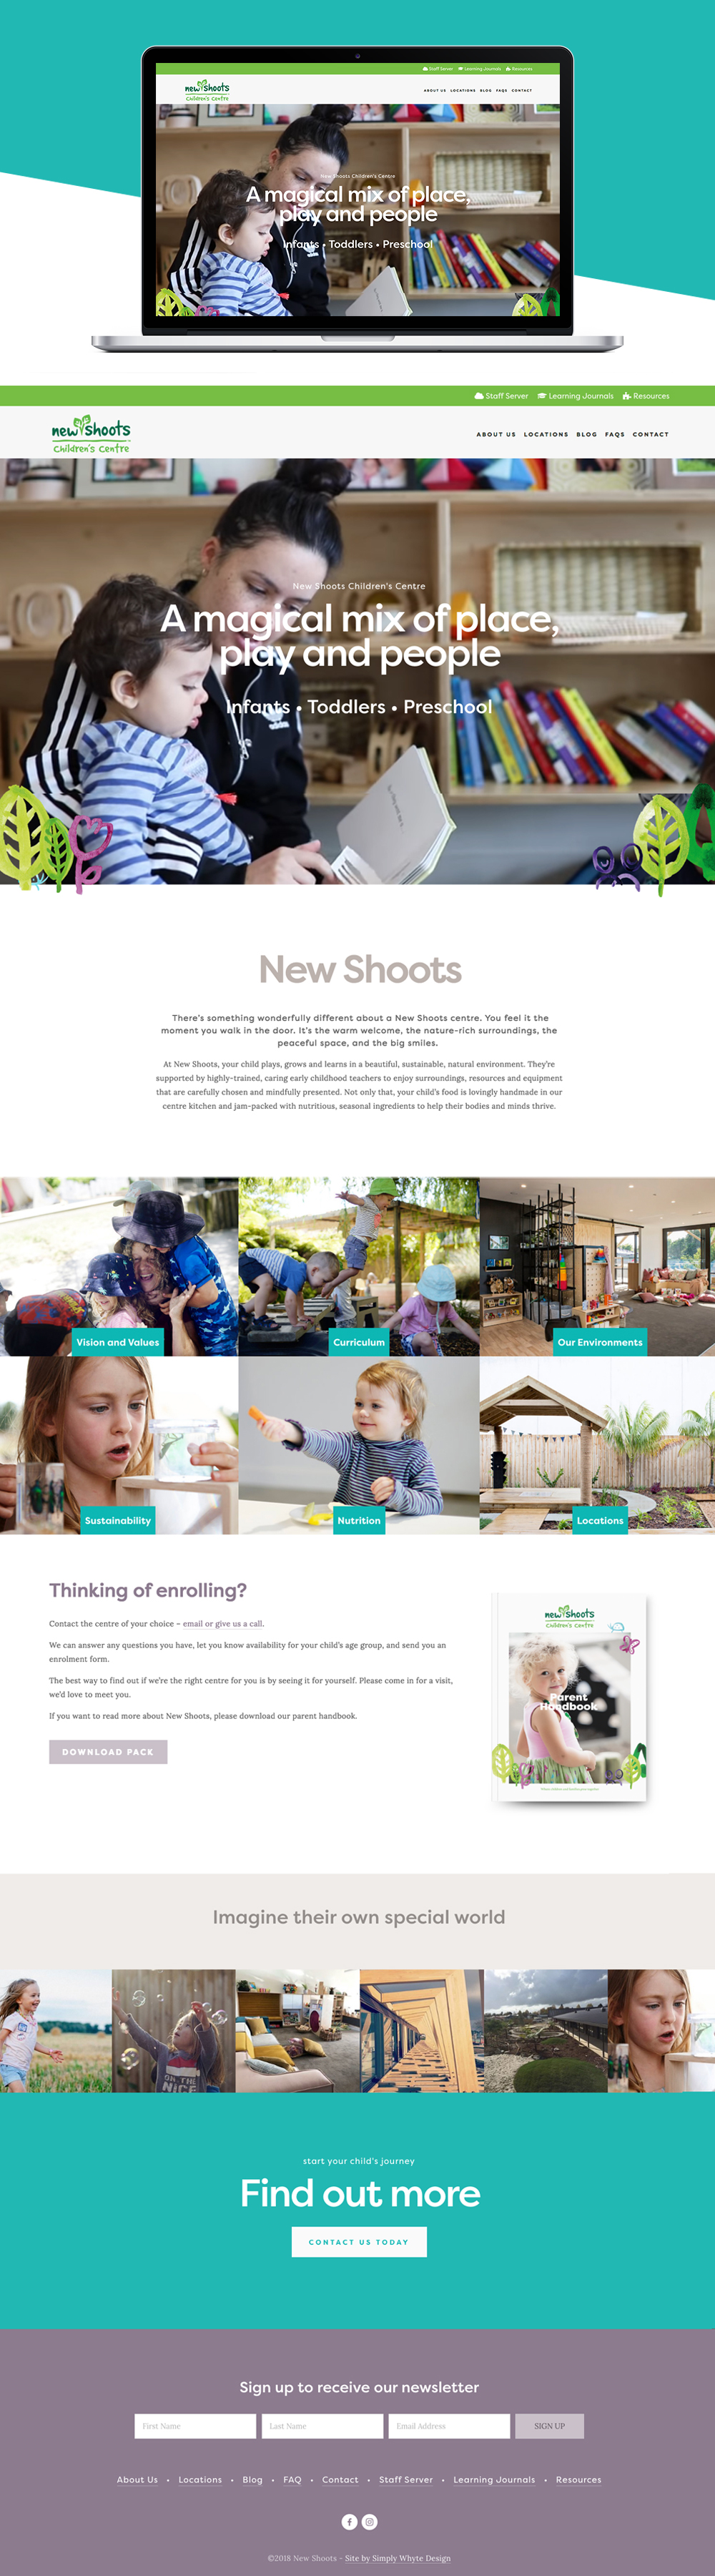 newshoots squarespace website by simply whyte design.jpg